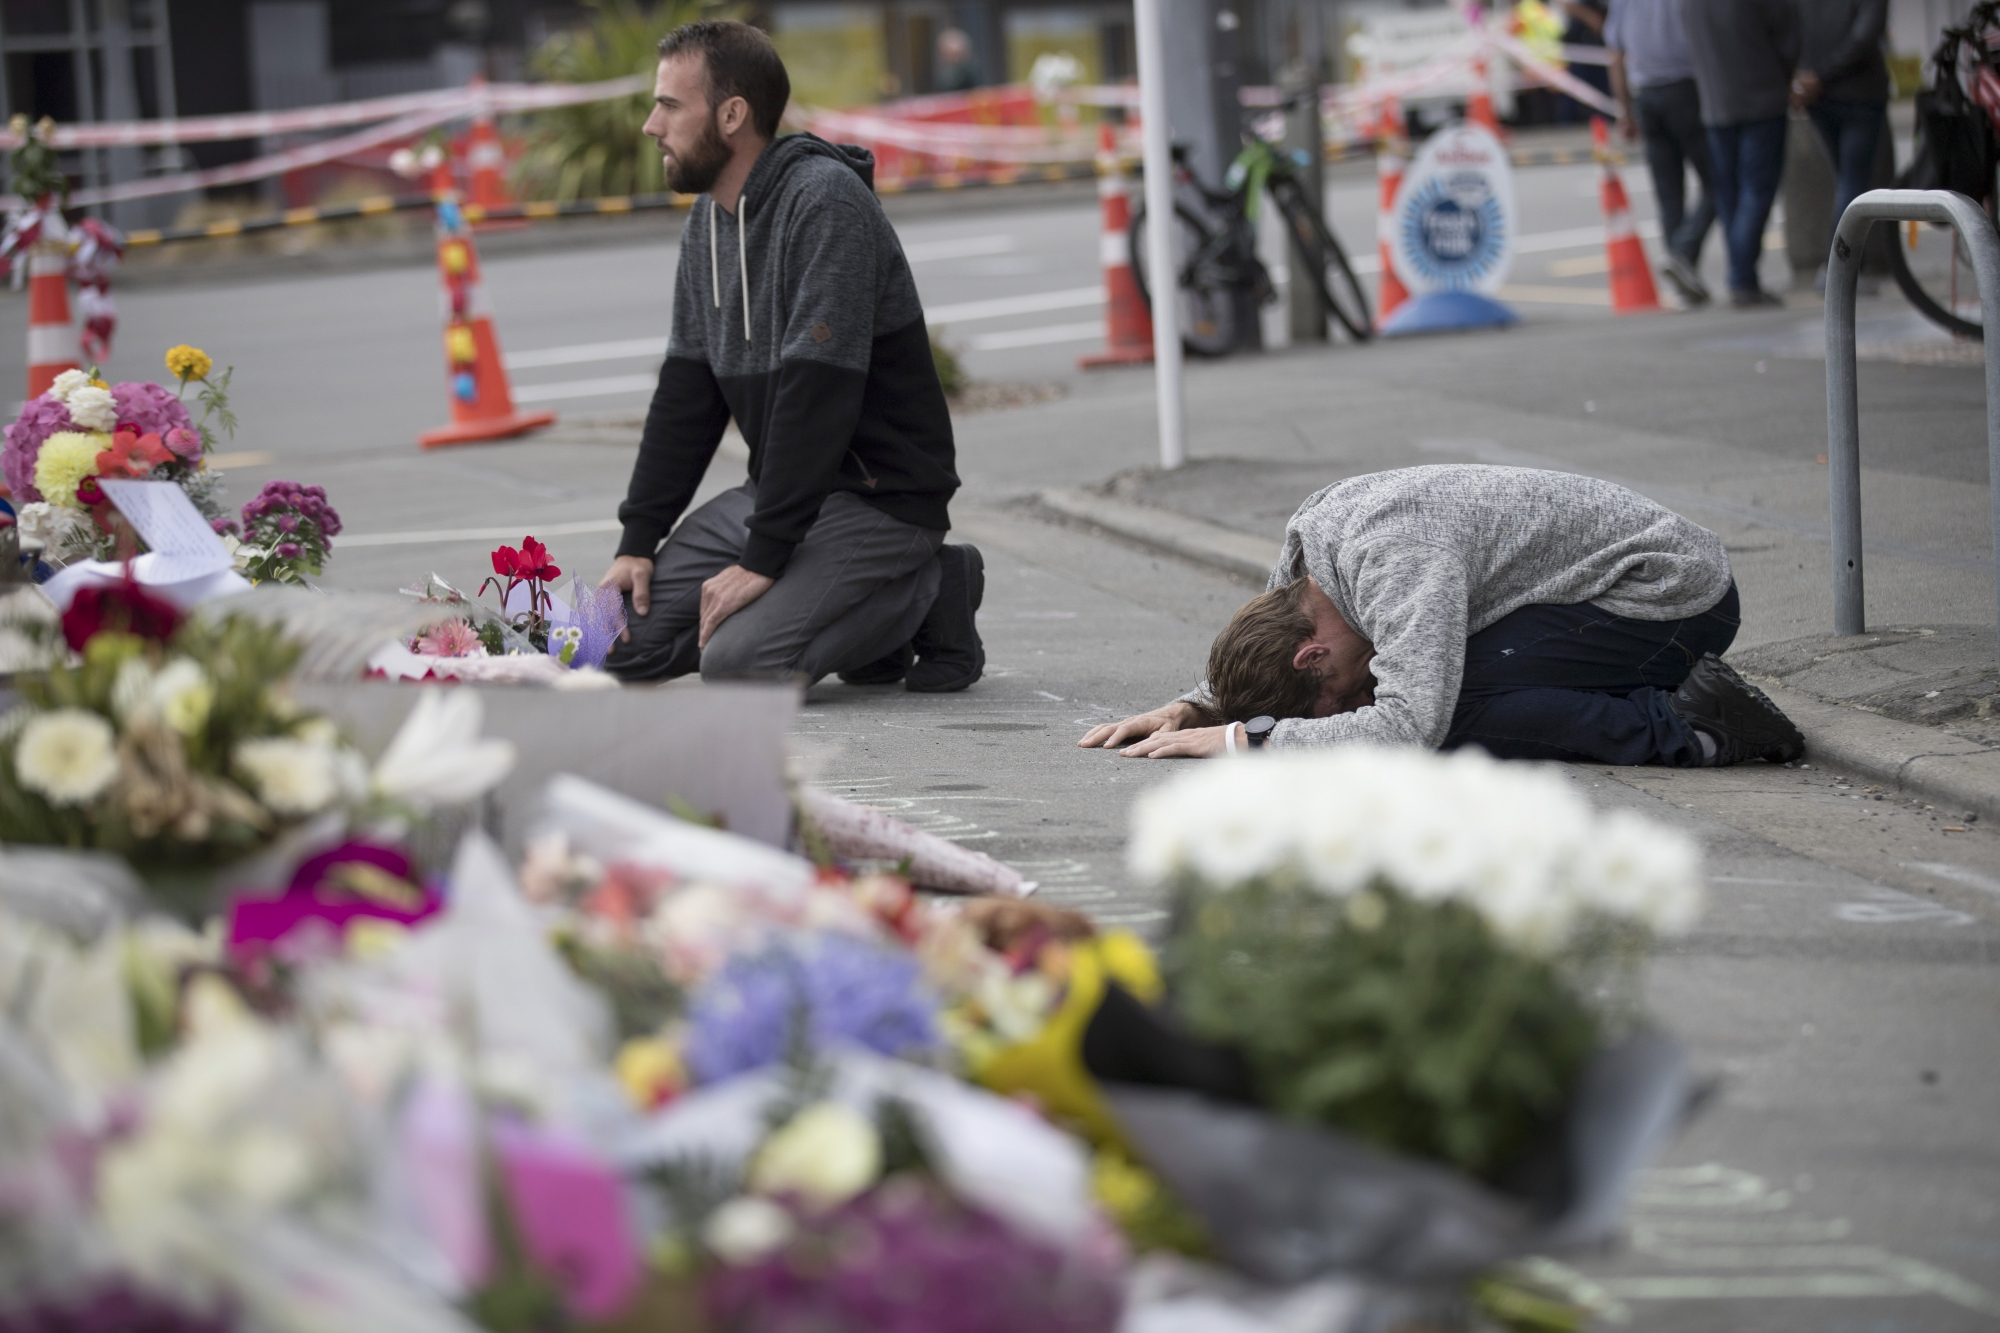 New Zealand Mosque Shooting Gallery: Father And Son Who Fled Syria Are Buried In New Zealand